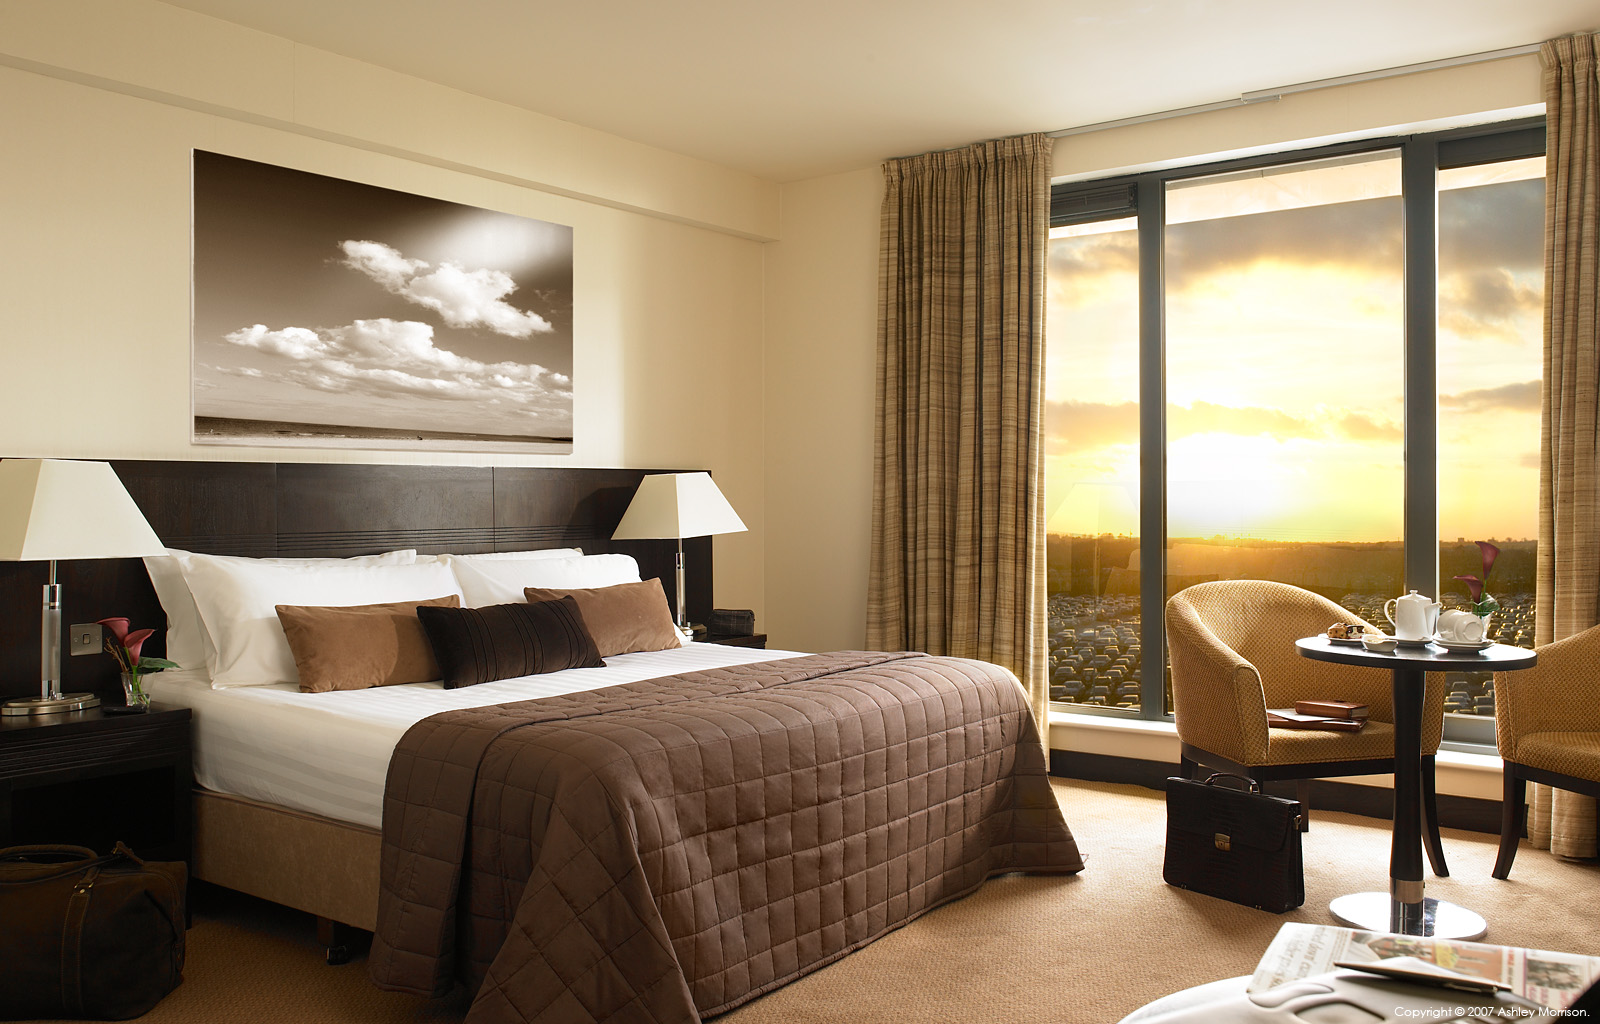 The Cloud's bedroom suite at the Carlton Hotel Dublin Airport by Ashley Morrison.